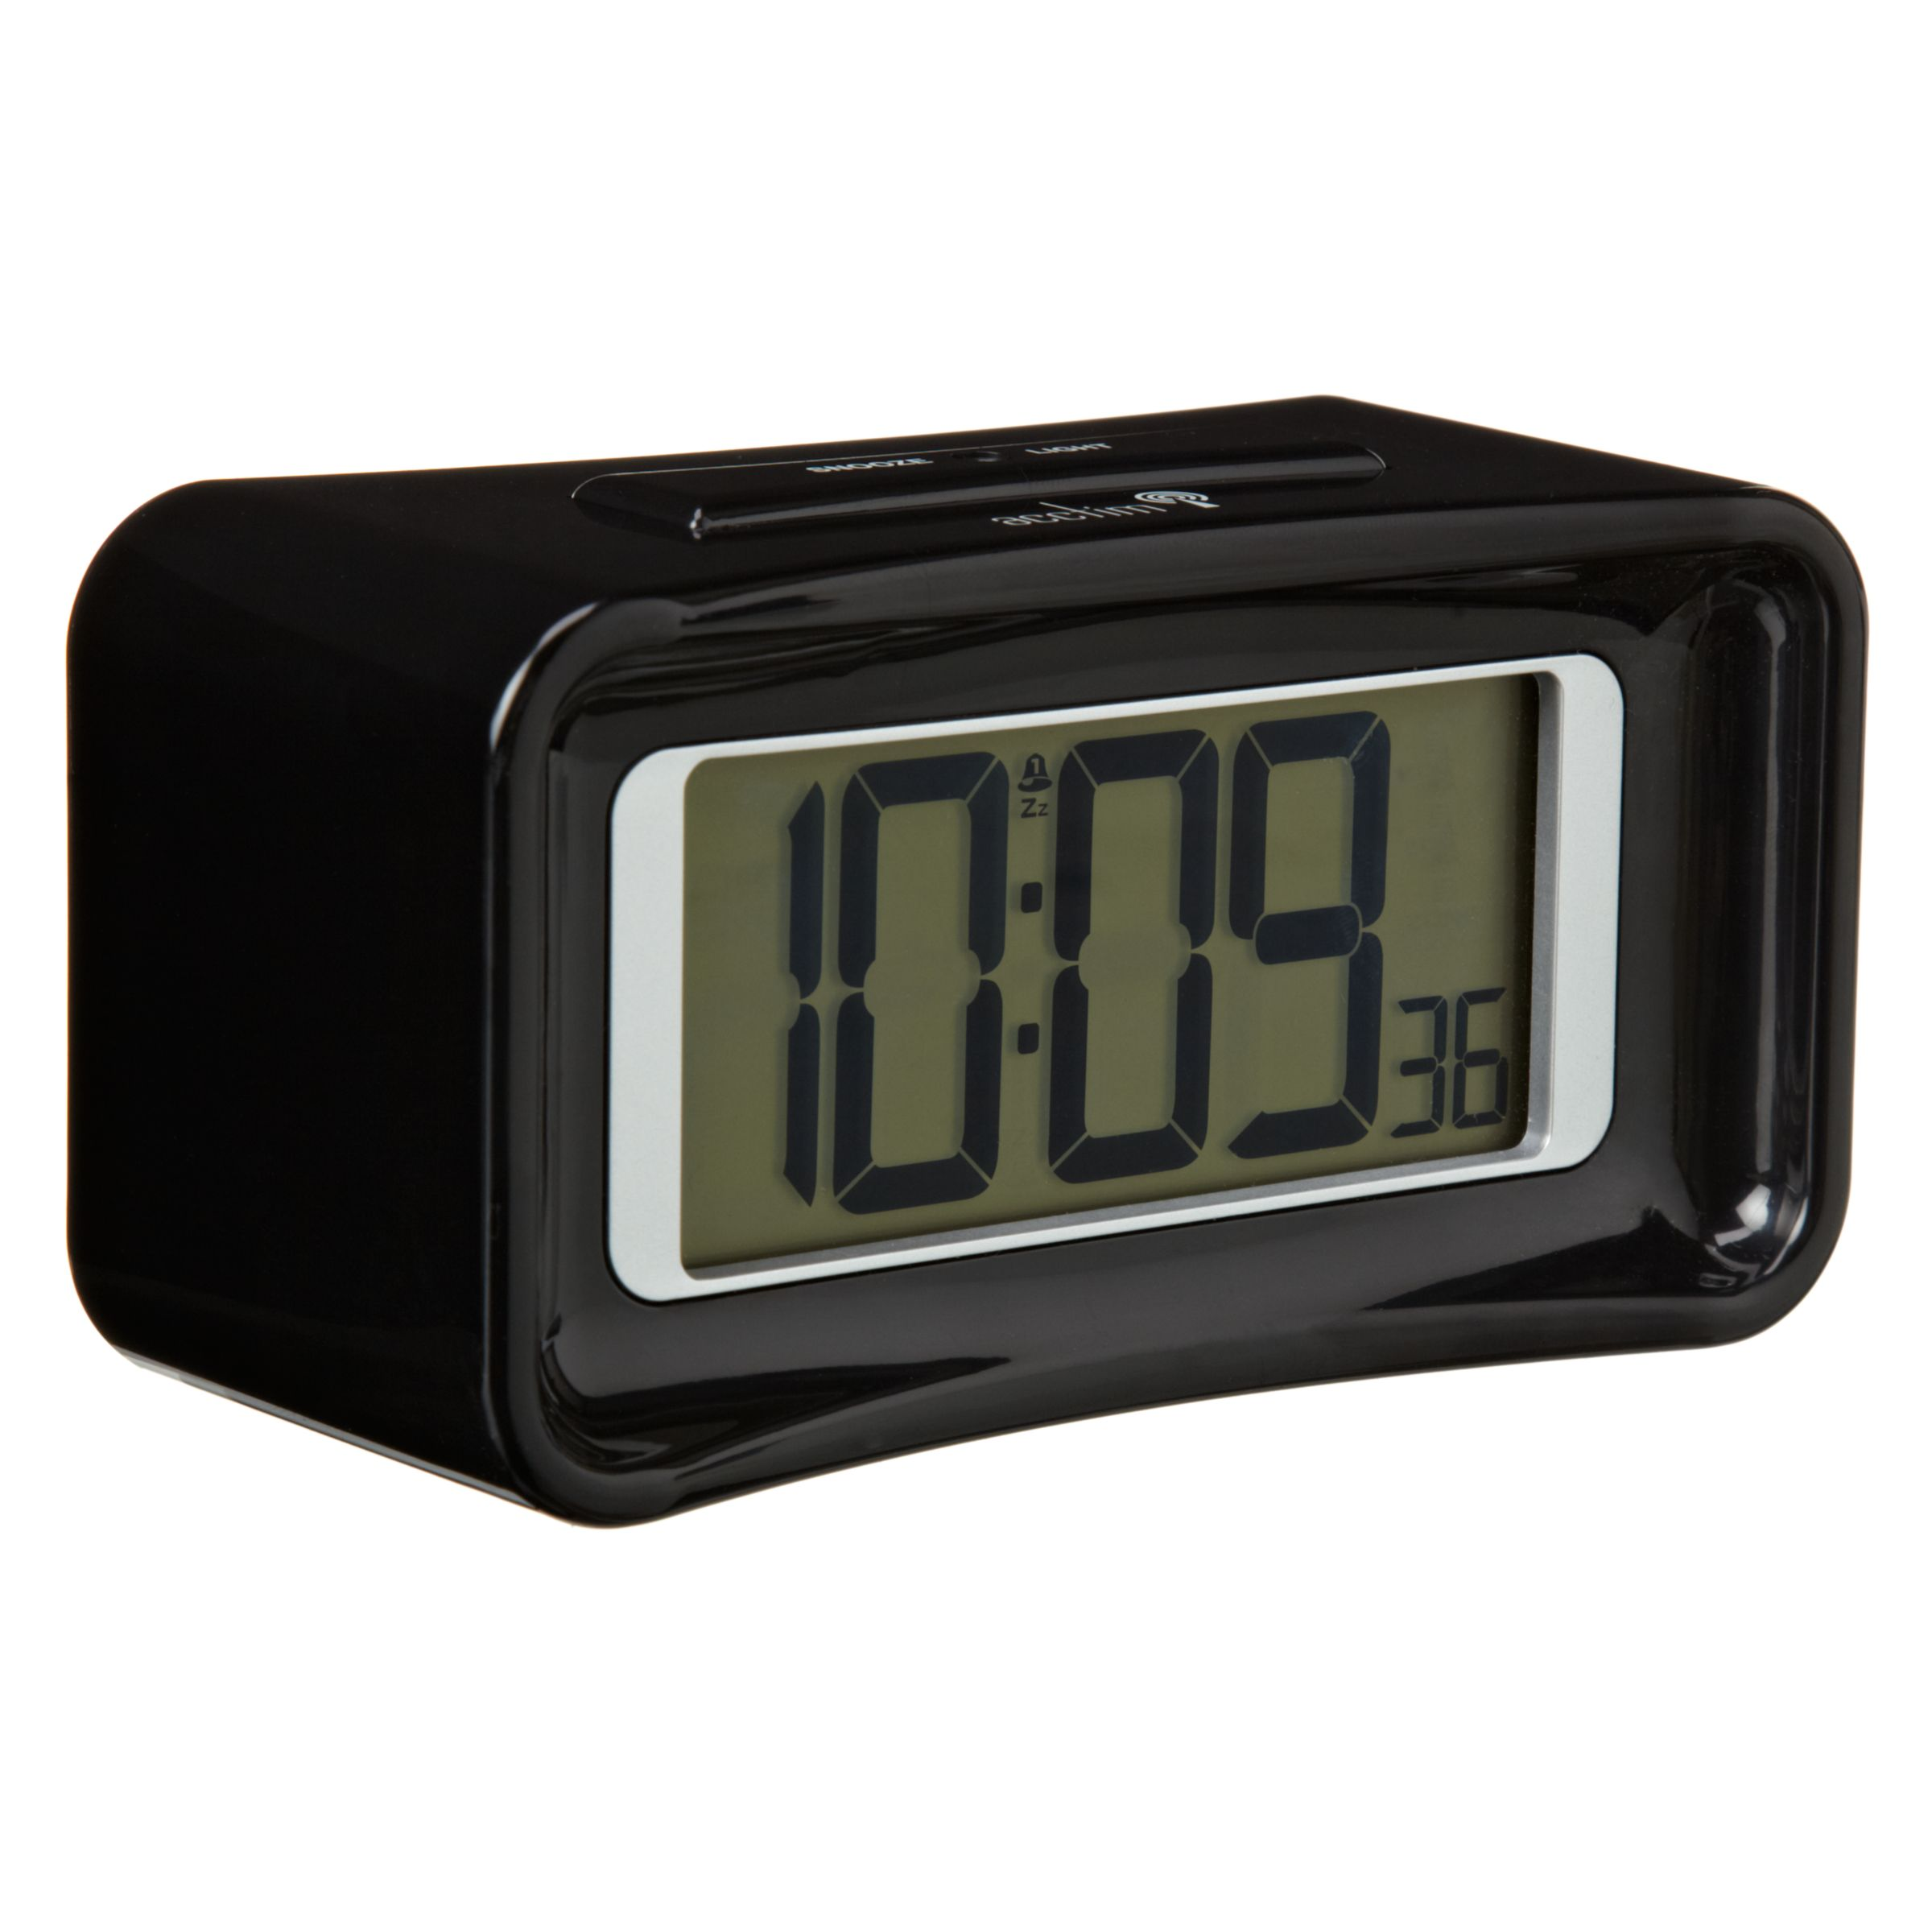 buy cheap radio controlled clock compare electronic gadgets prices for best uk deals. Black Bedroom Furniture Sets. Home Design Ideas